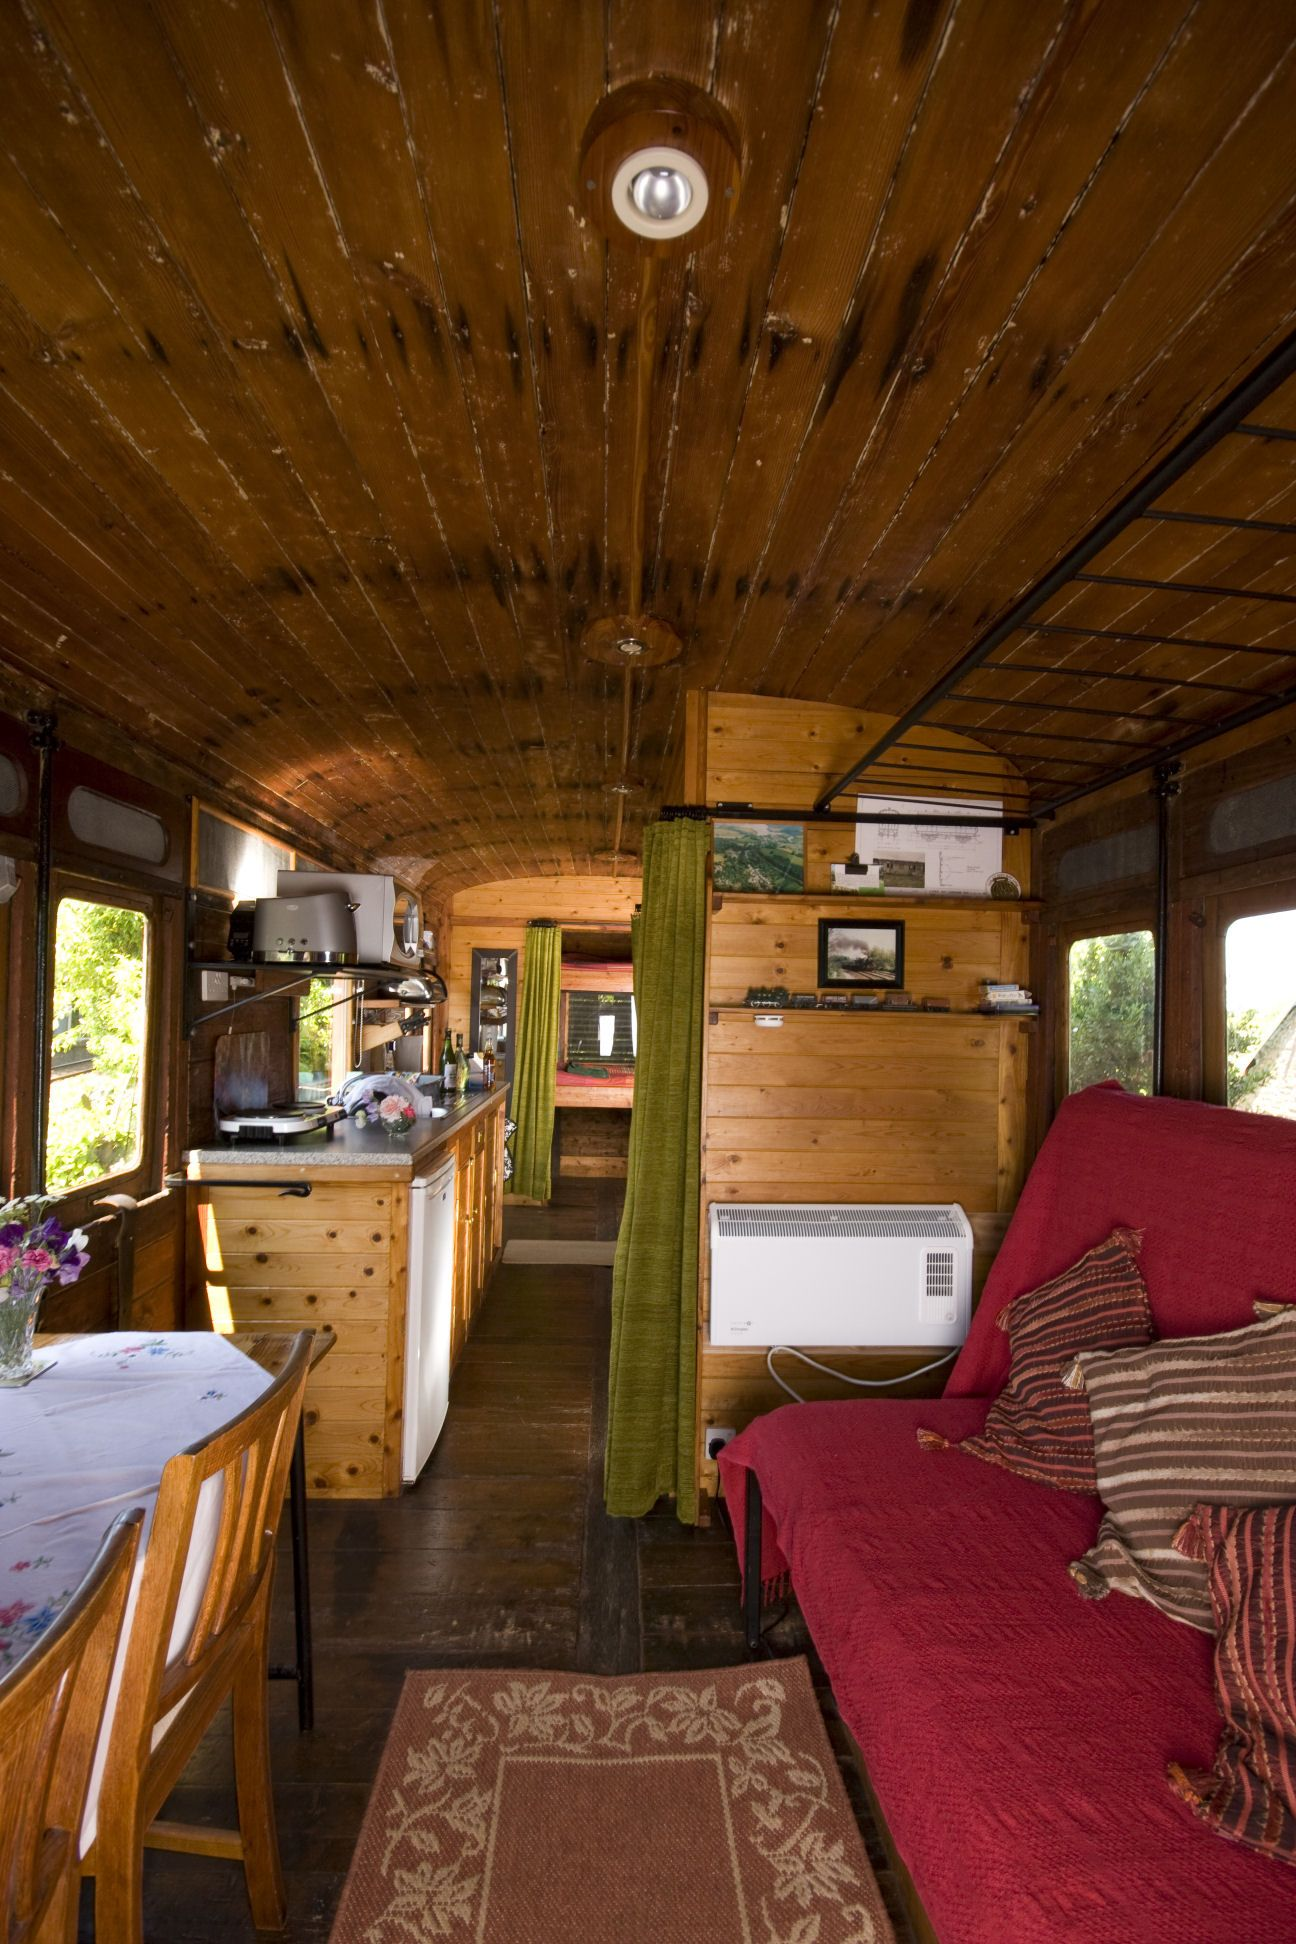 Railway Carriage Holiday Homes House furniture design